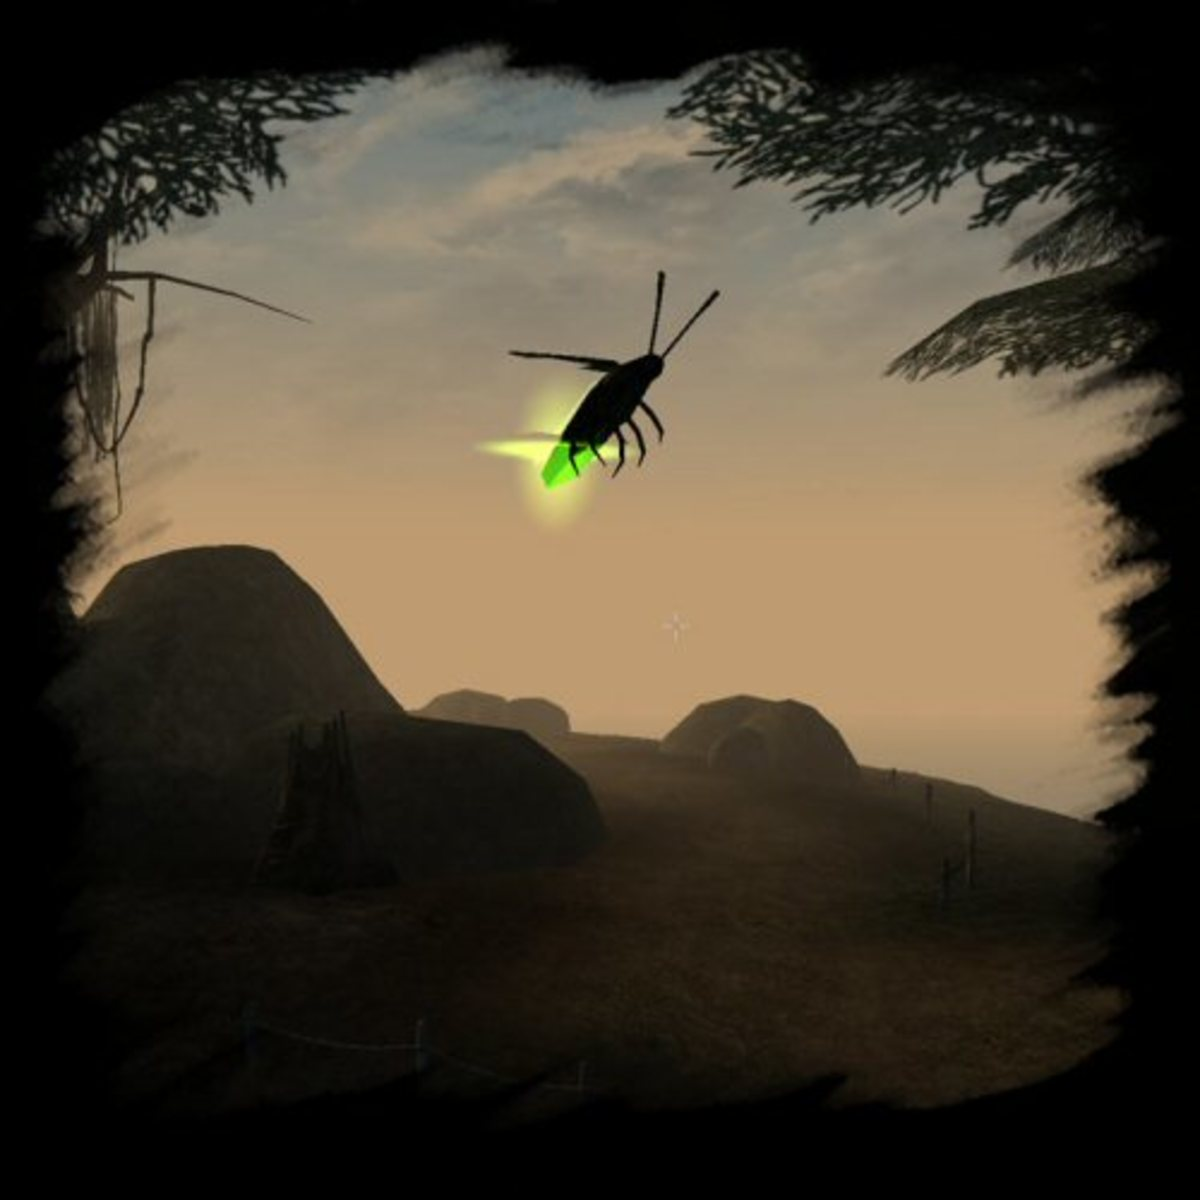 Fire fly in flight